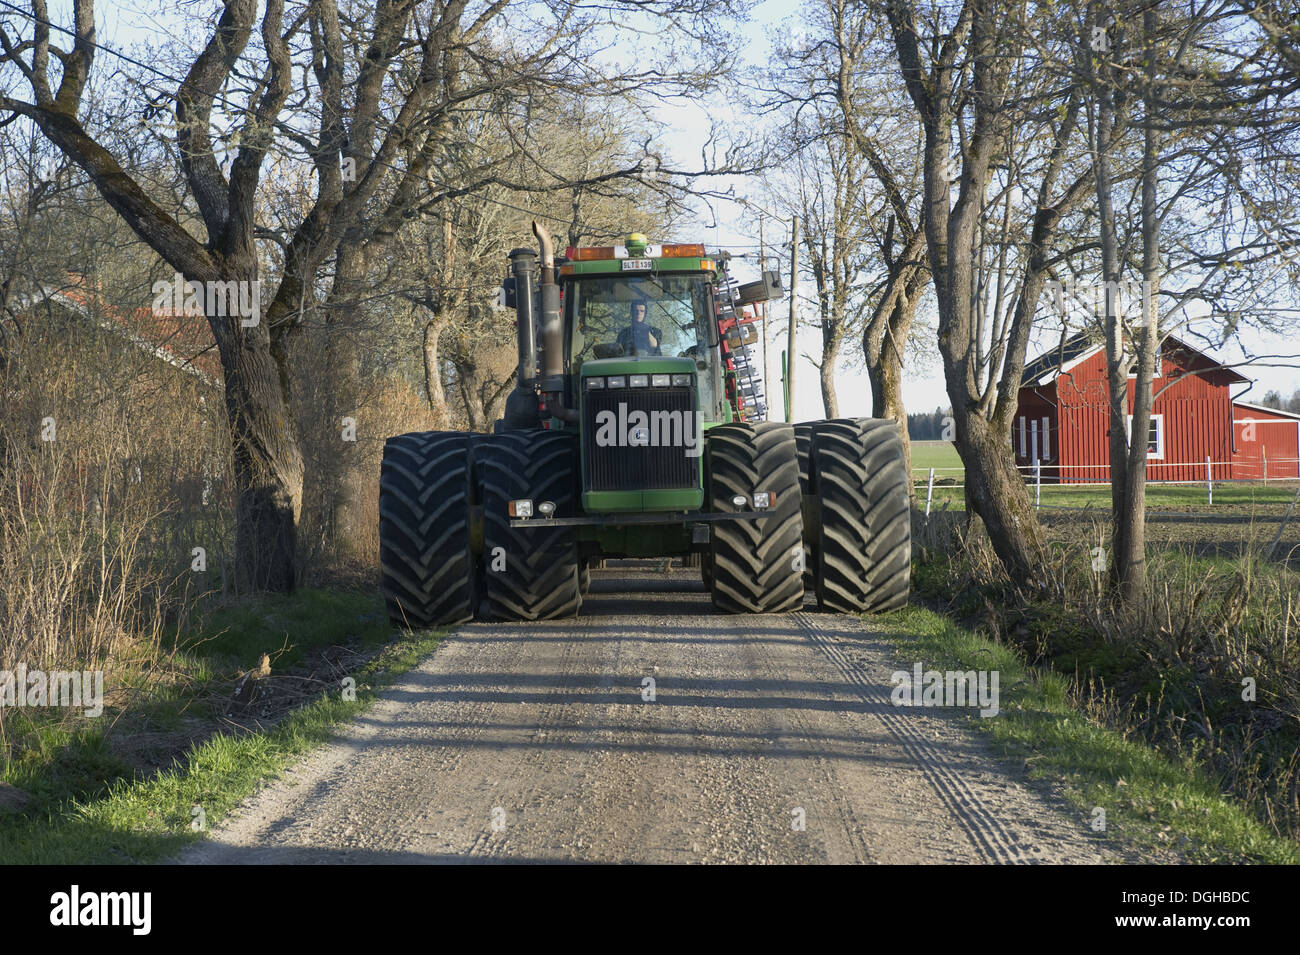 John Deere Tractor With Dual Wheels Driving Along Small Road Dghbdc